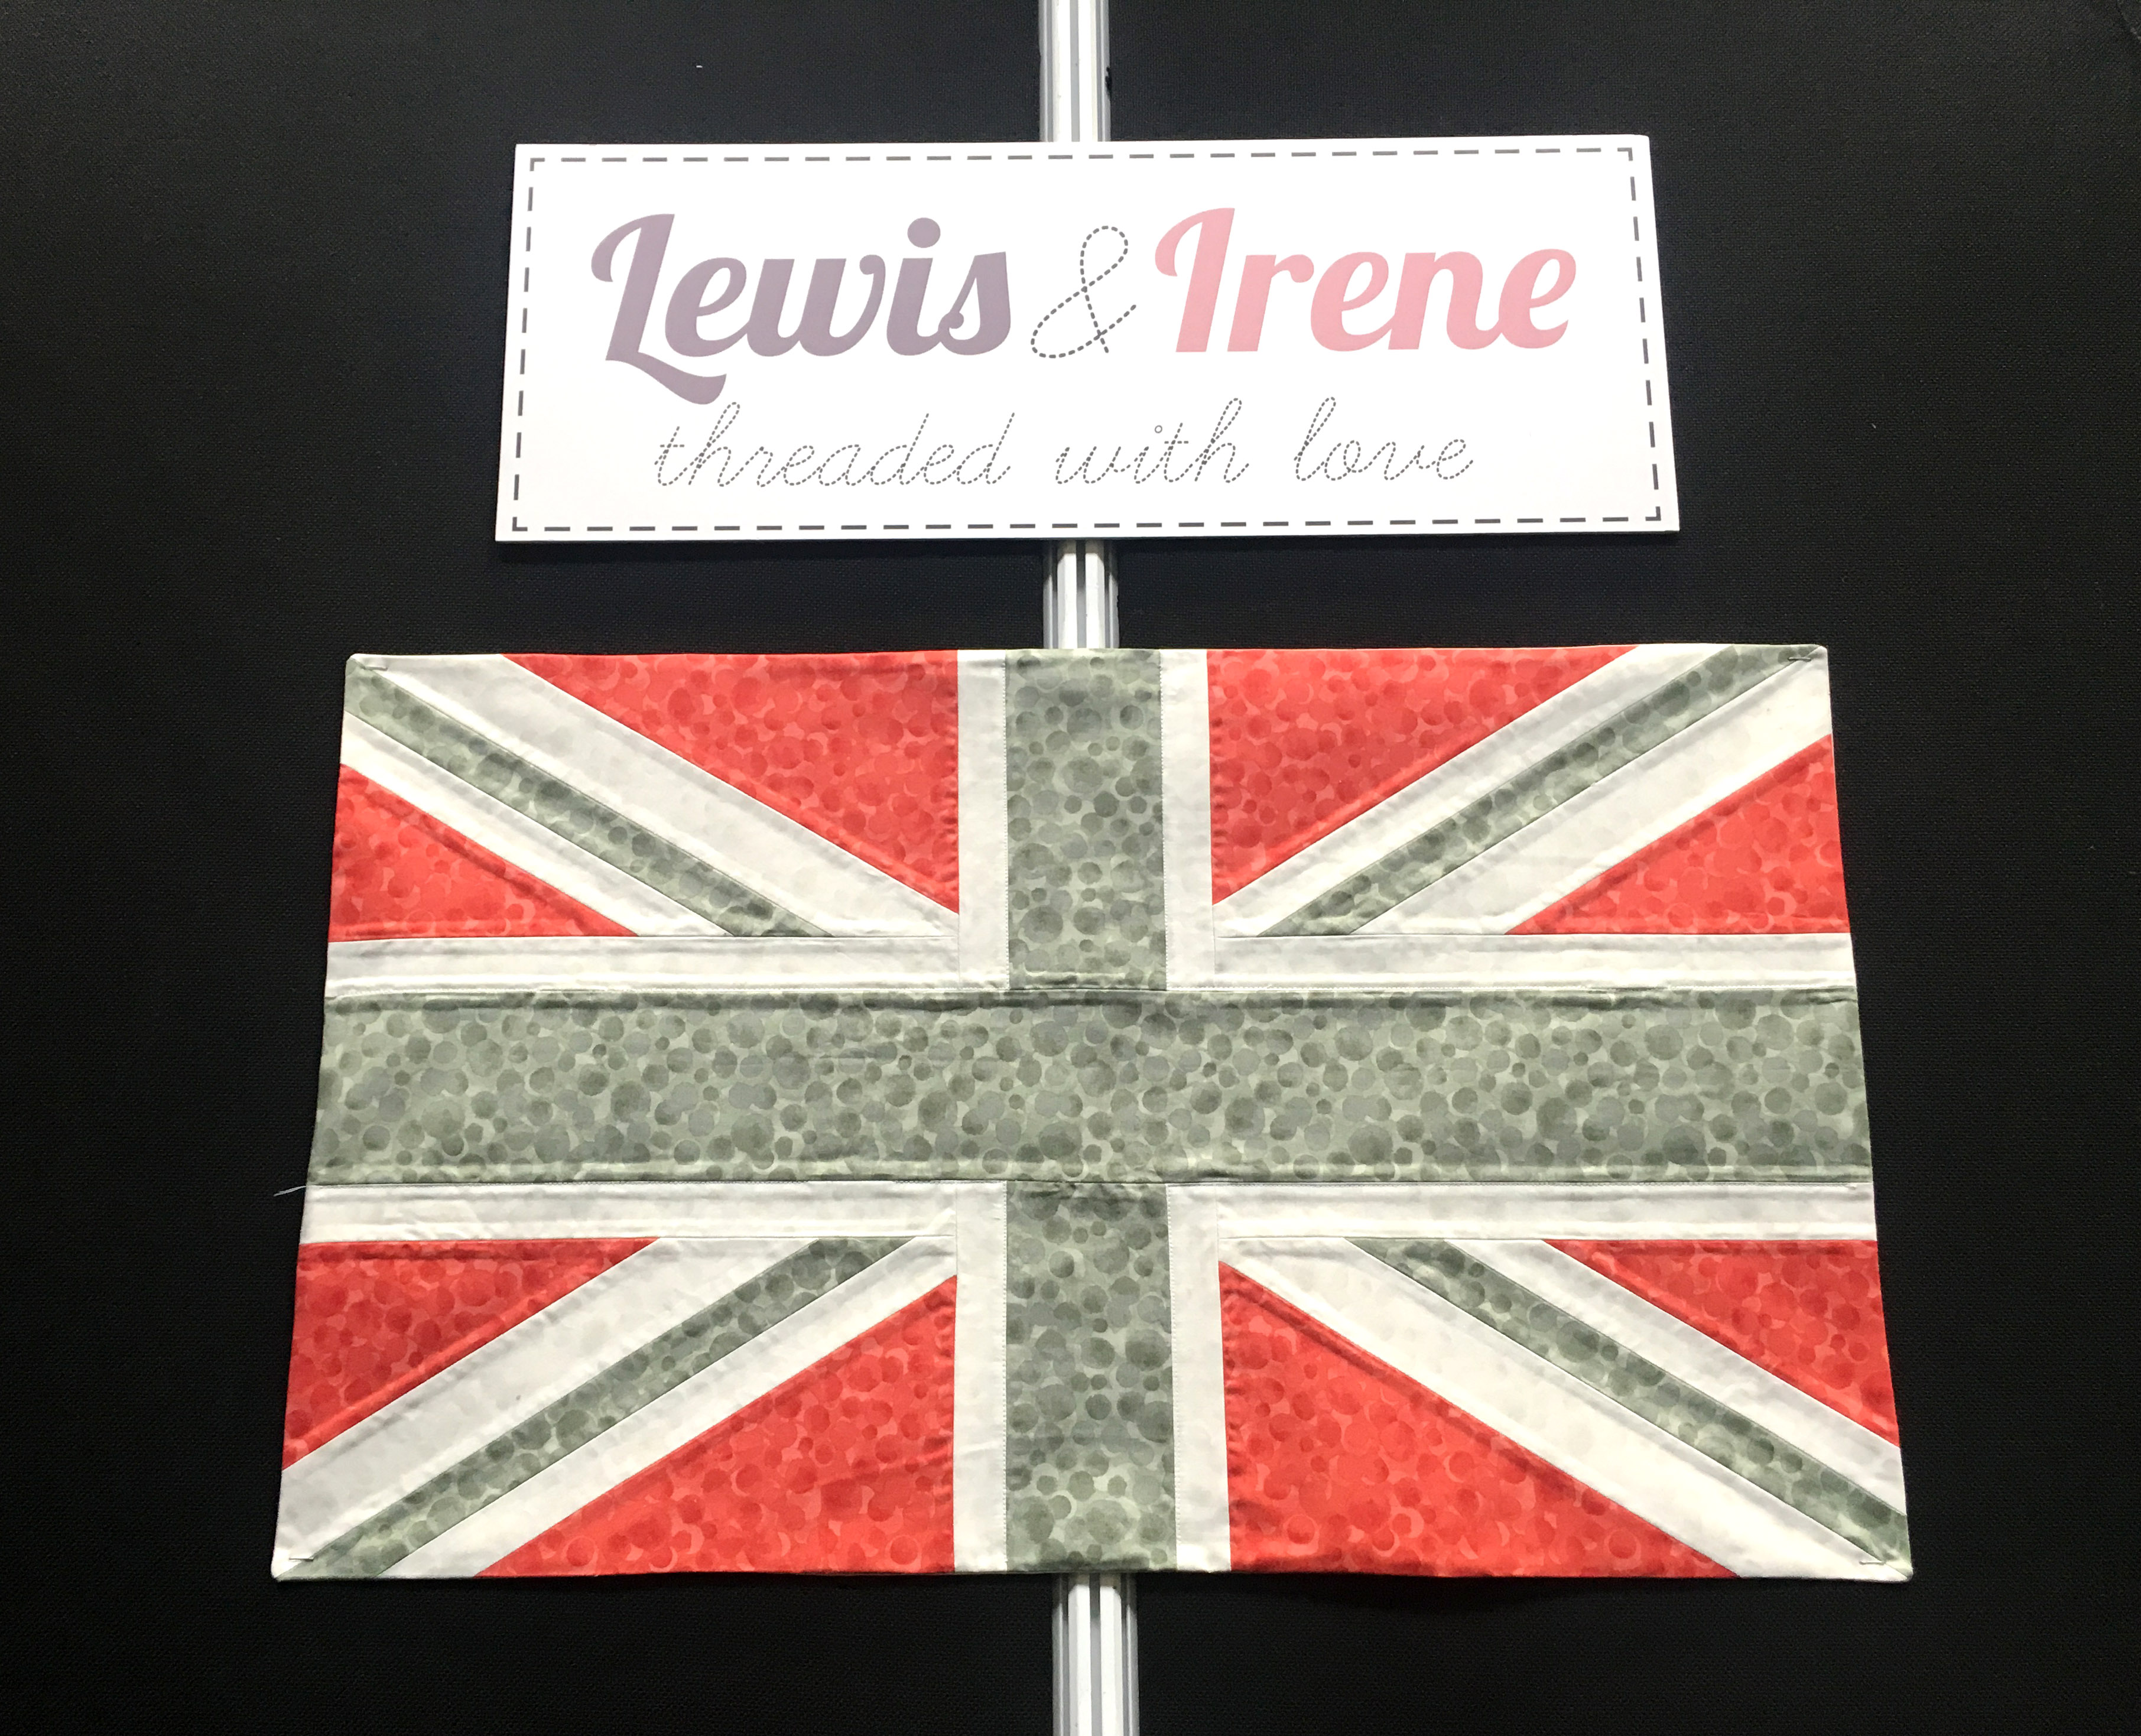 Lewis and Irene Fabrics Union Jack Fabric Flag